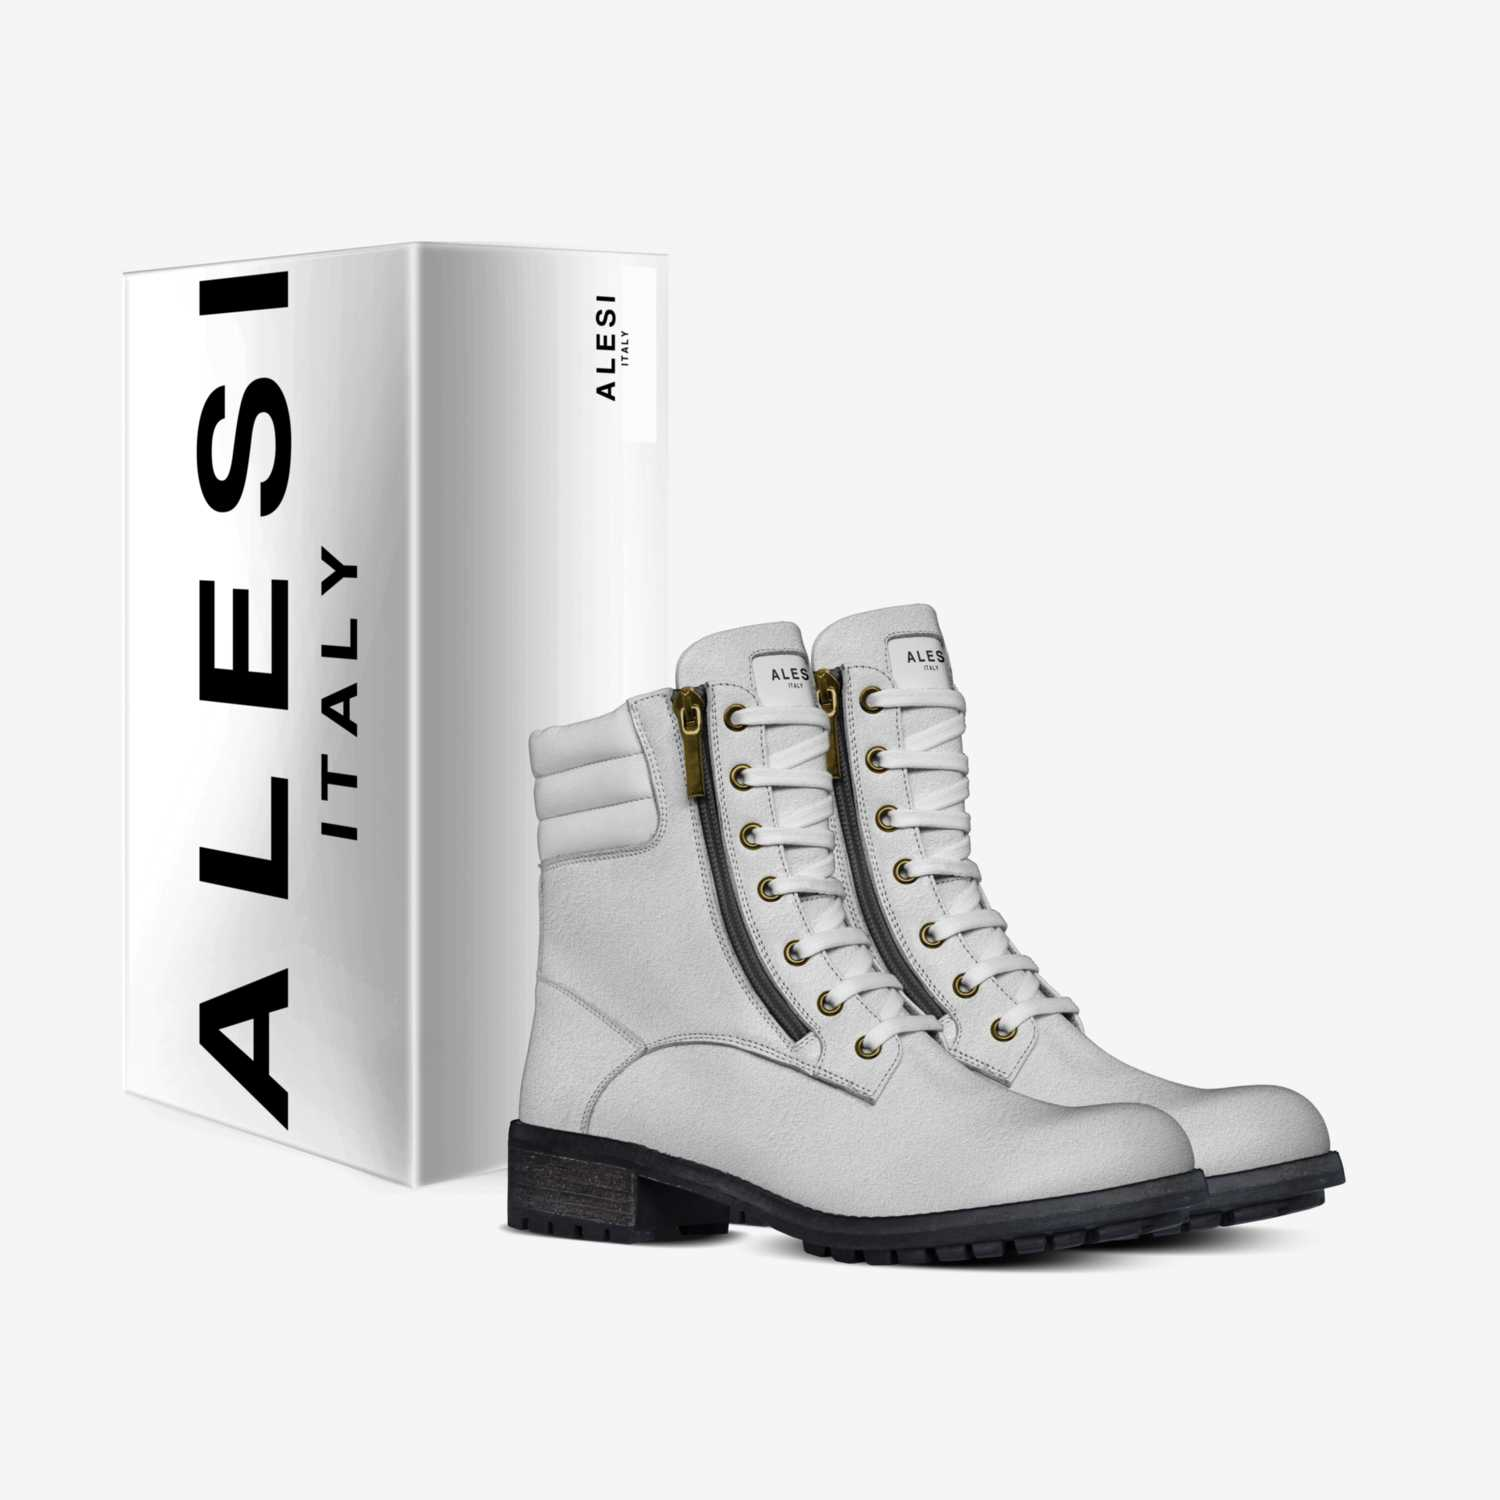 Alesi Lady Boots custom made in Italy shoes by Lonanthony Parker | Box view